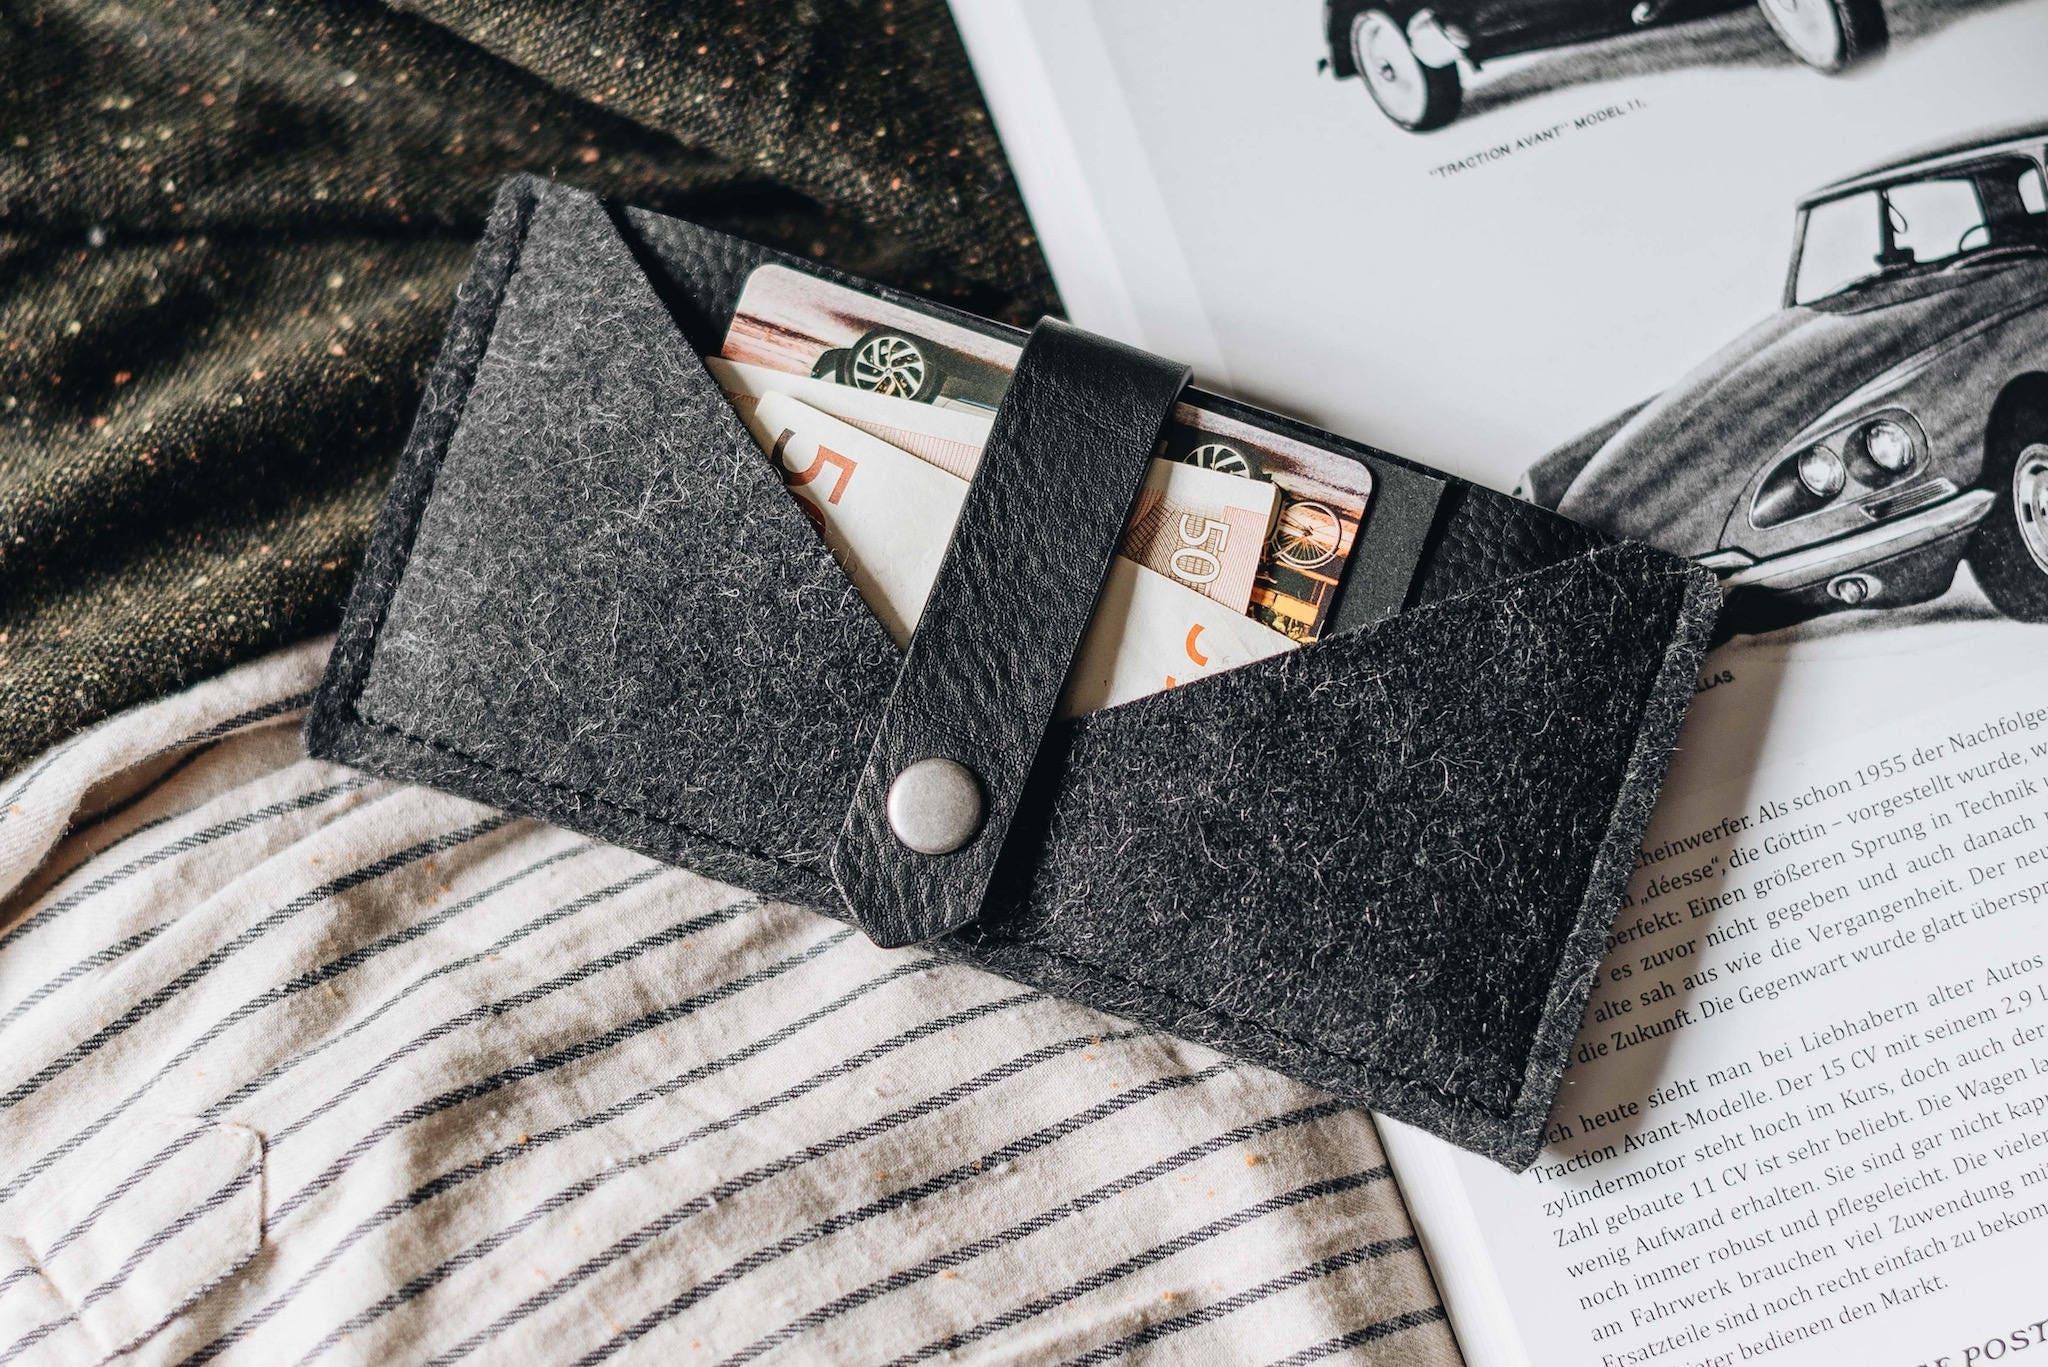 Case for iPhone X iPhone X Wallet leather wool felt tan